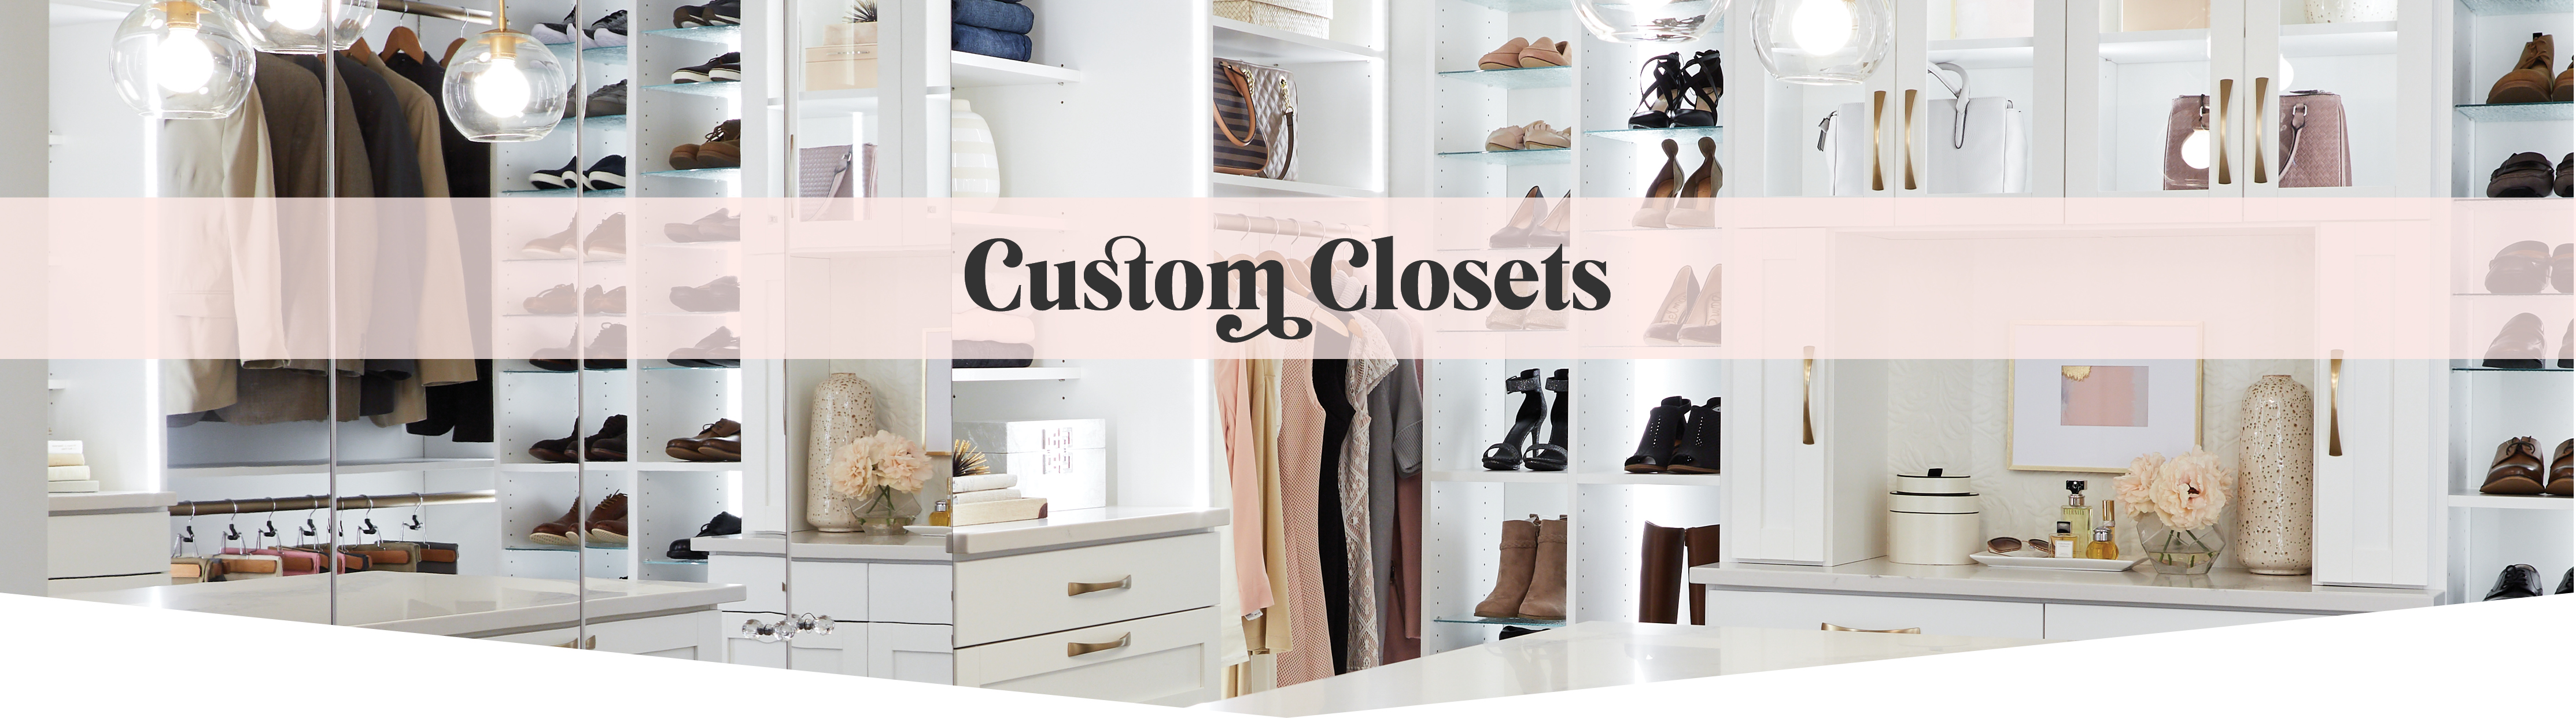 Discover custom closet solutions from Inspired Closets